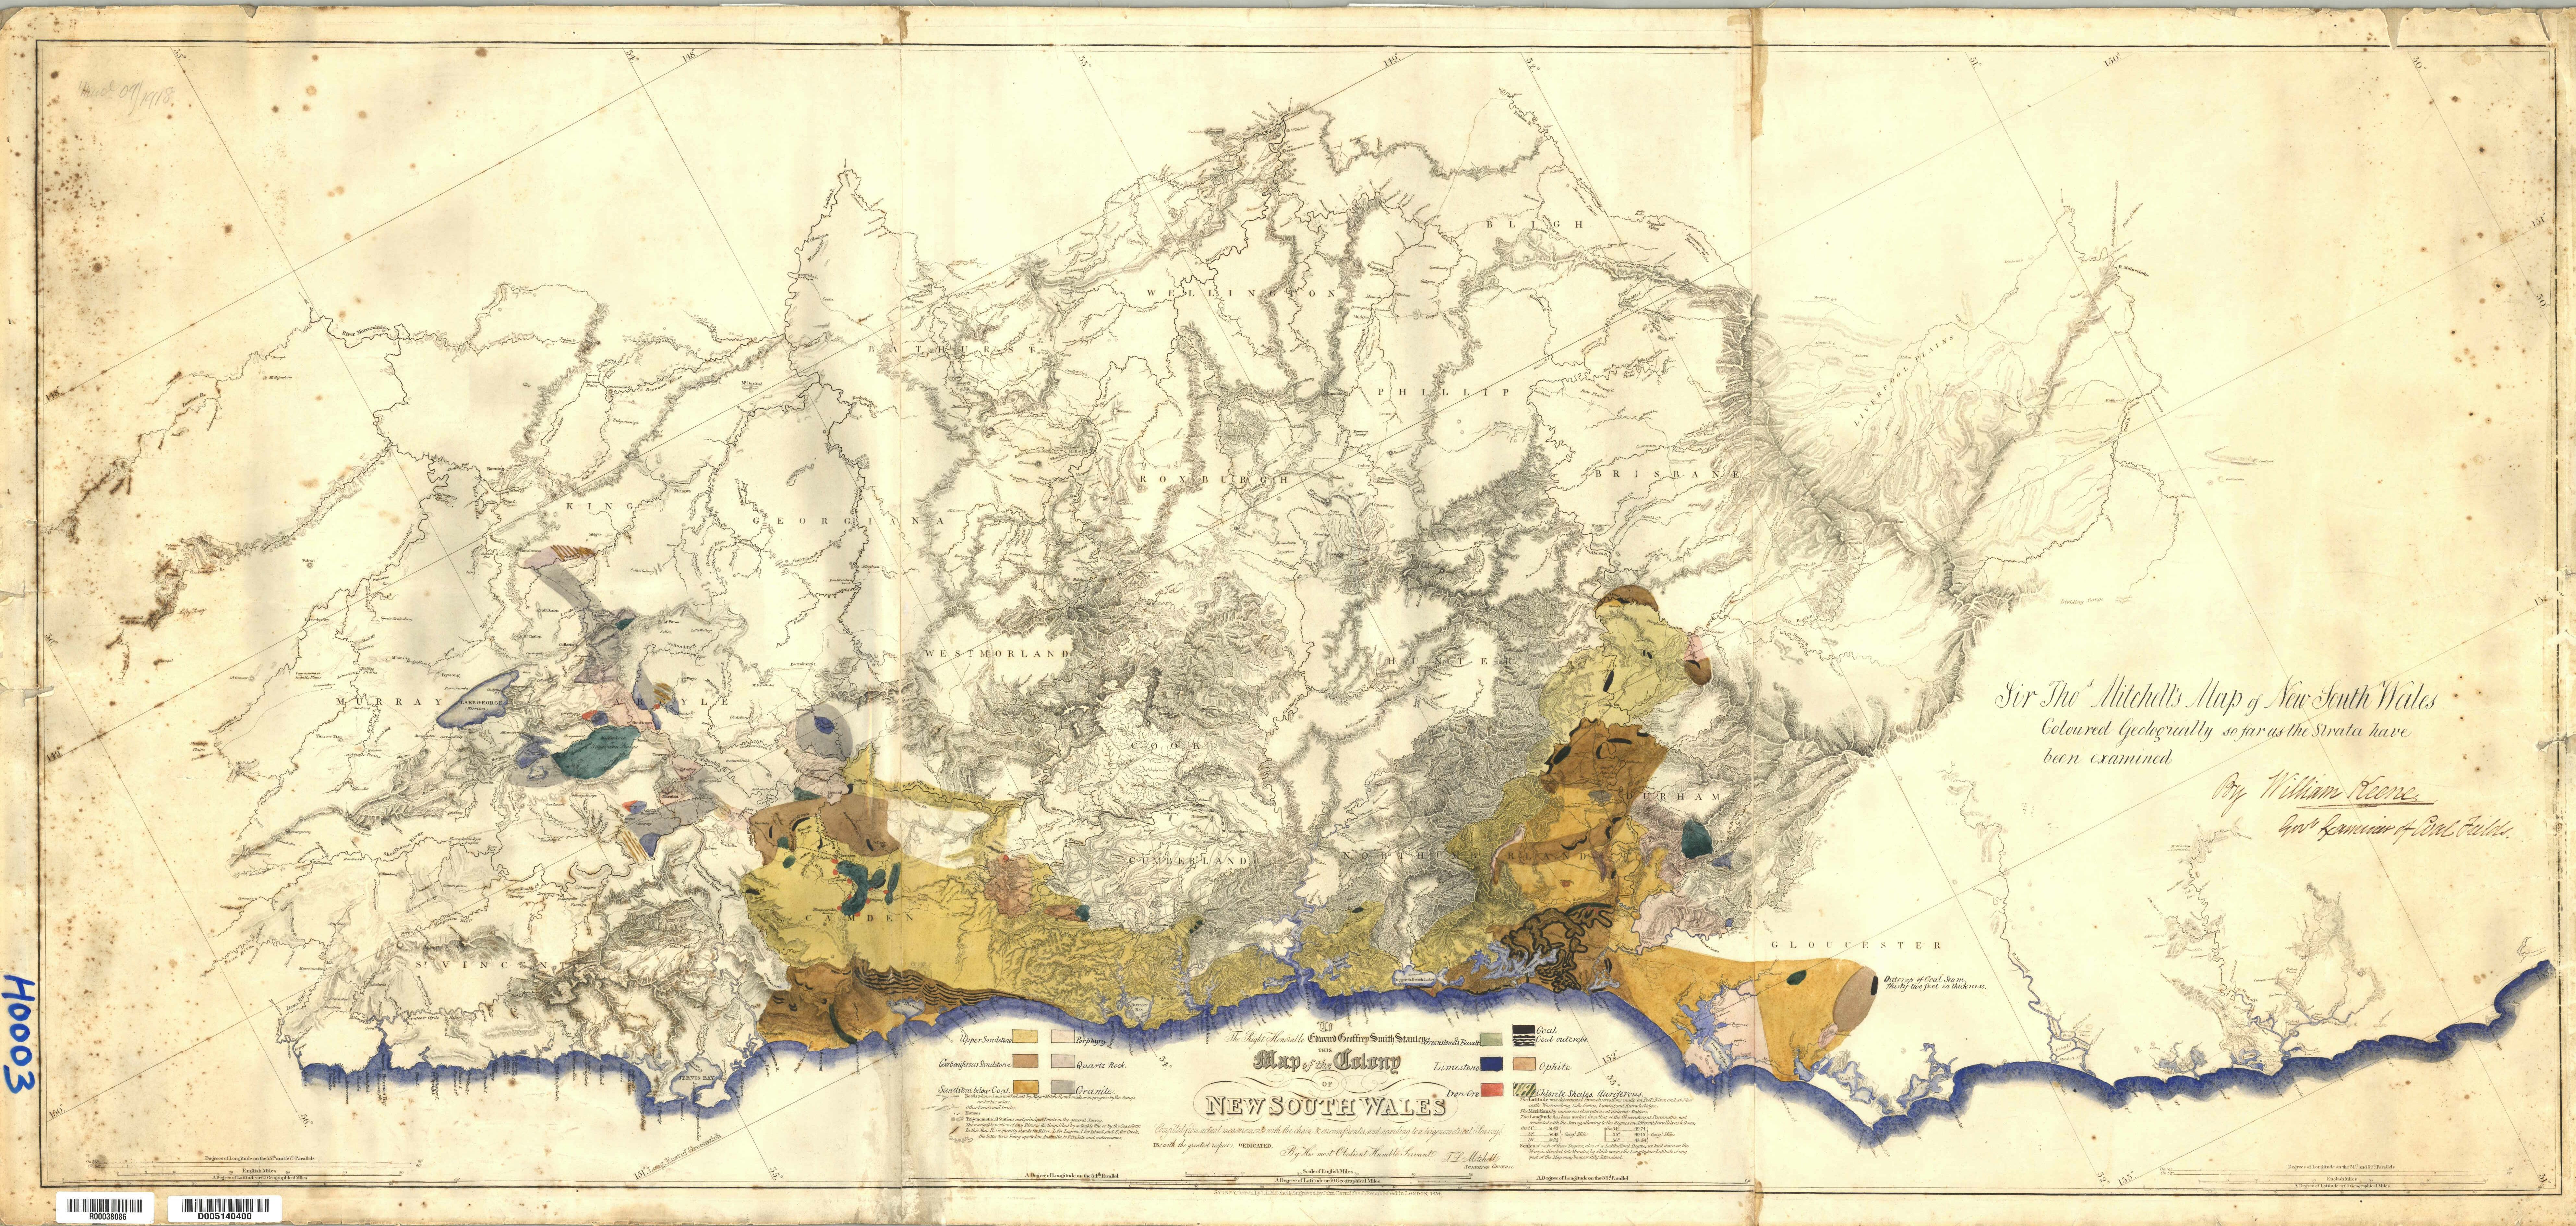 map of the colony of new south wales 1834 by tl mitchell surveyor general